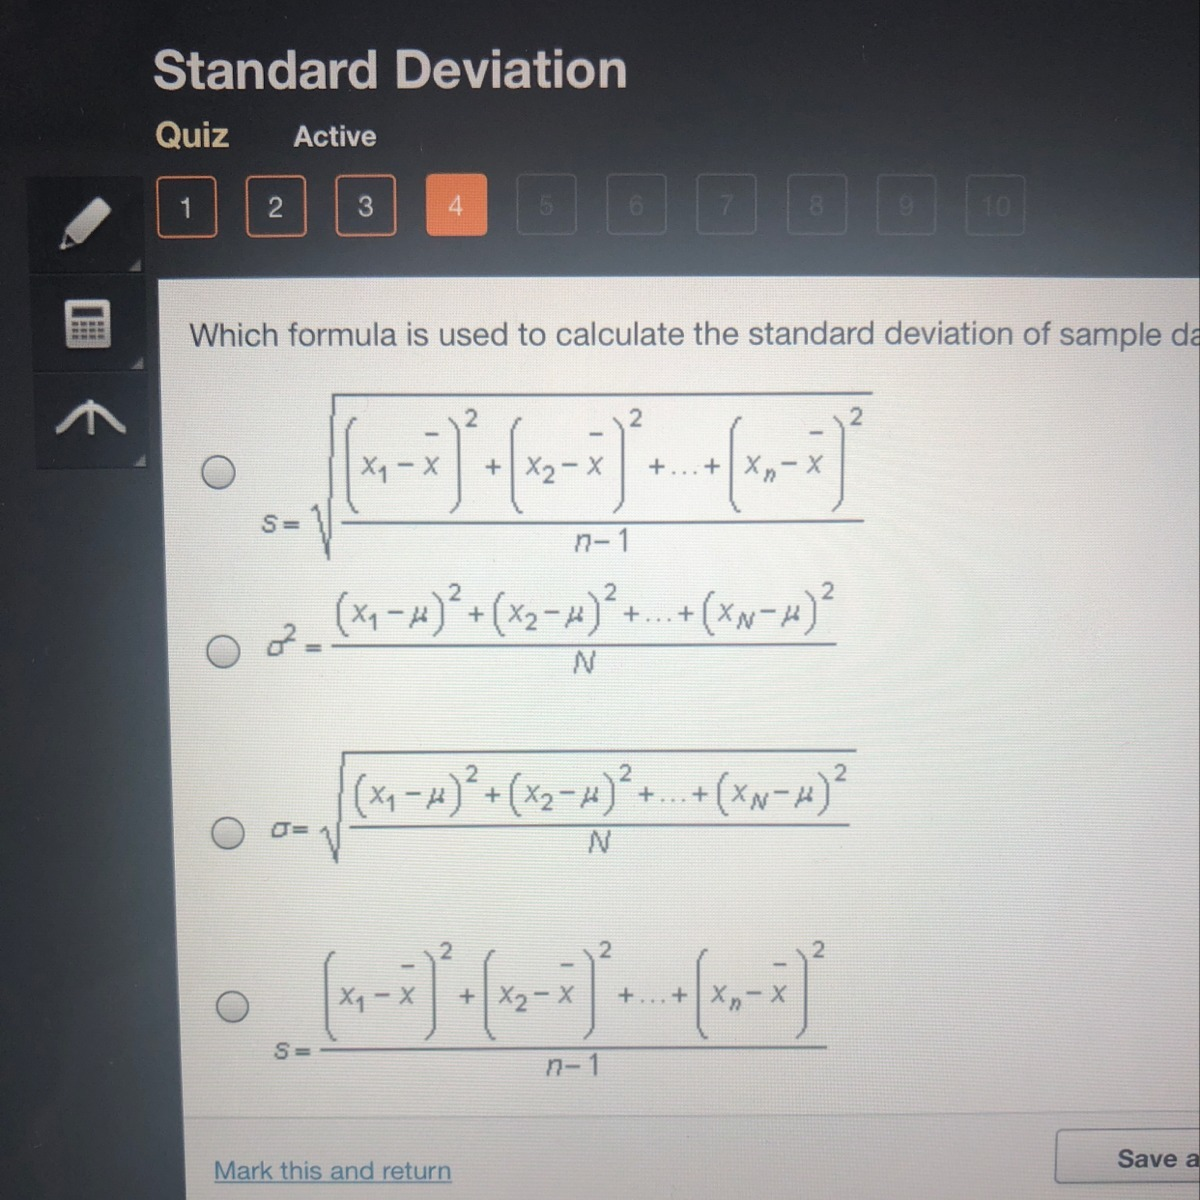 Which Formula Is Used To Calculate The Standard Deviations Of Sample